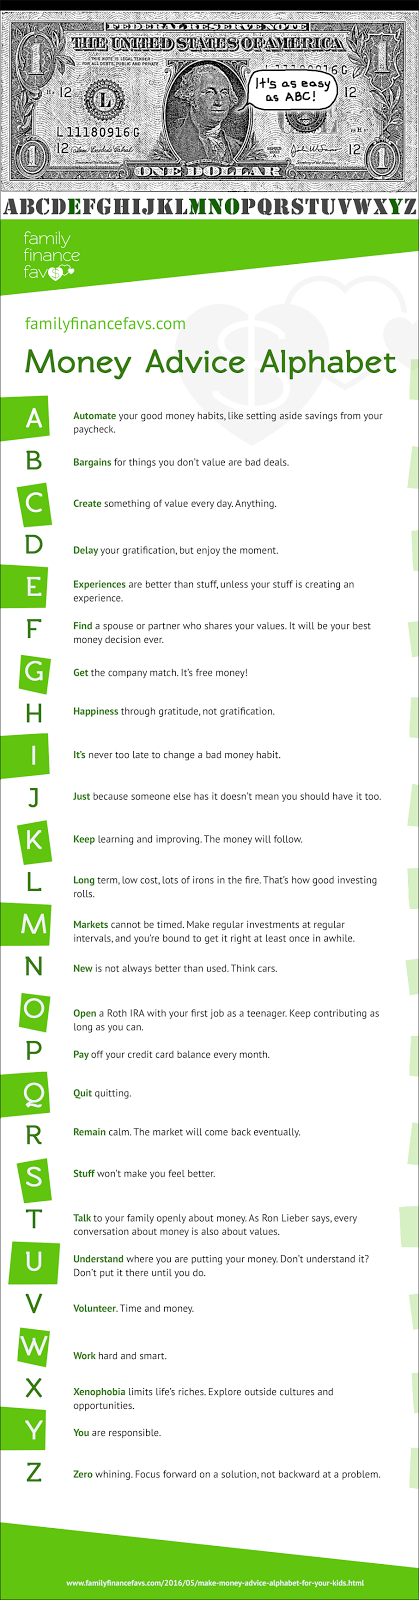 Money Advice Alphabet